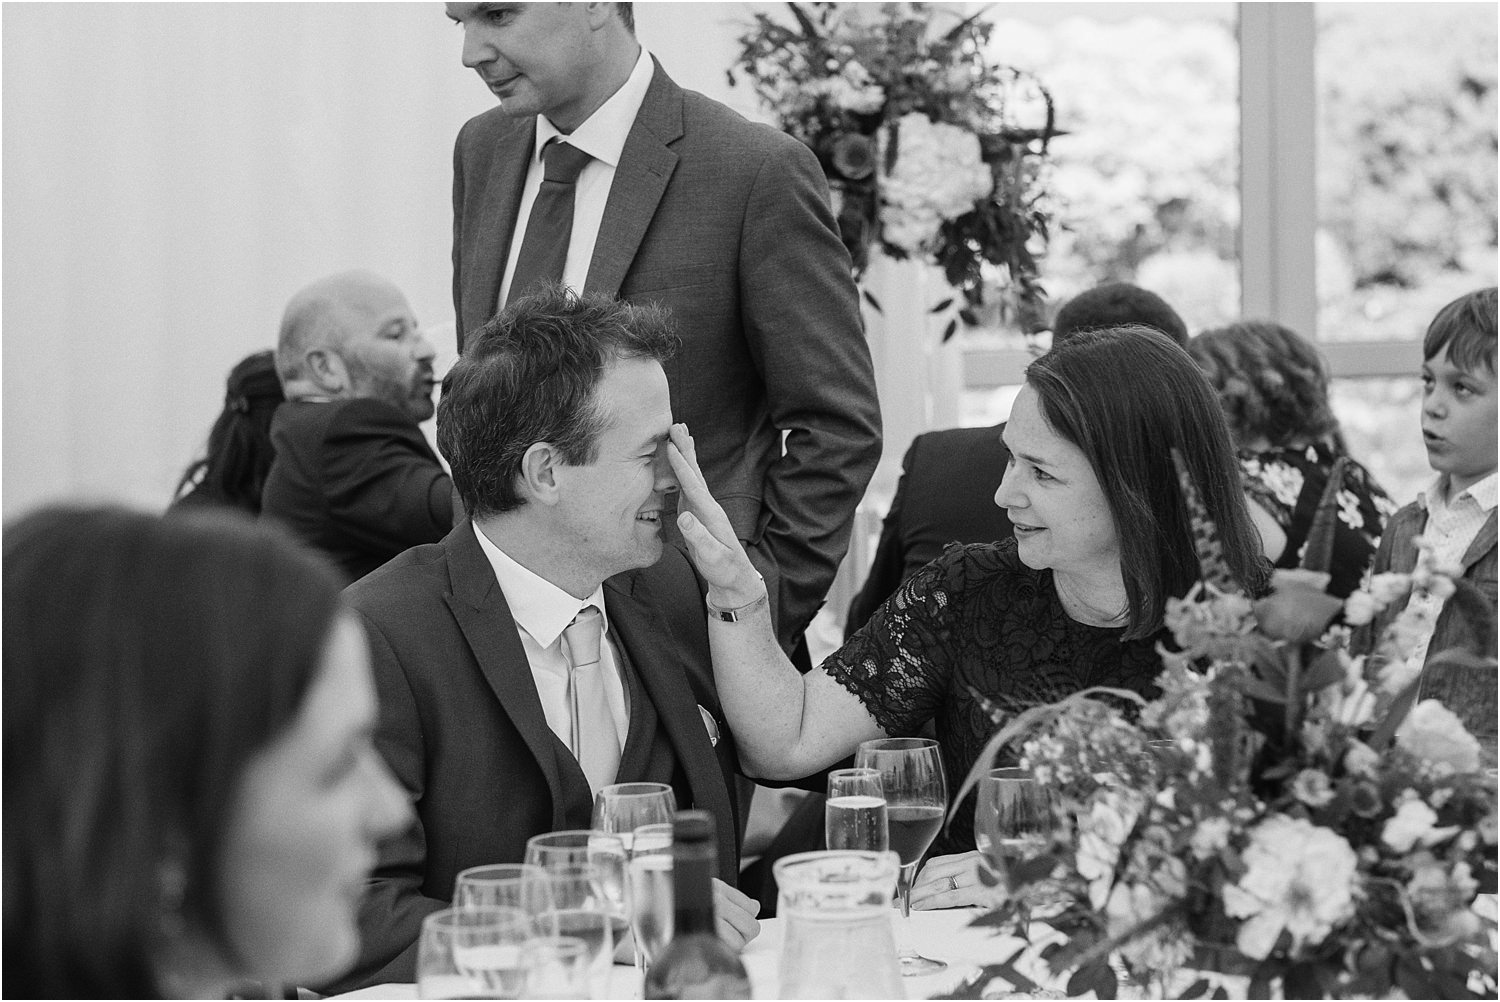 Guest touches partner's nose at wedding reception